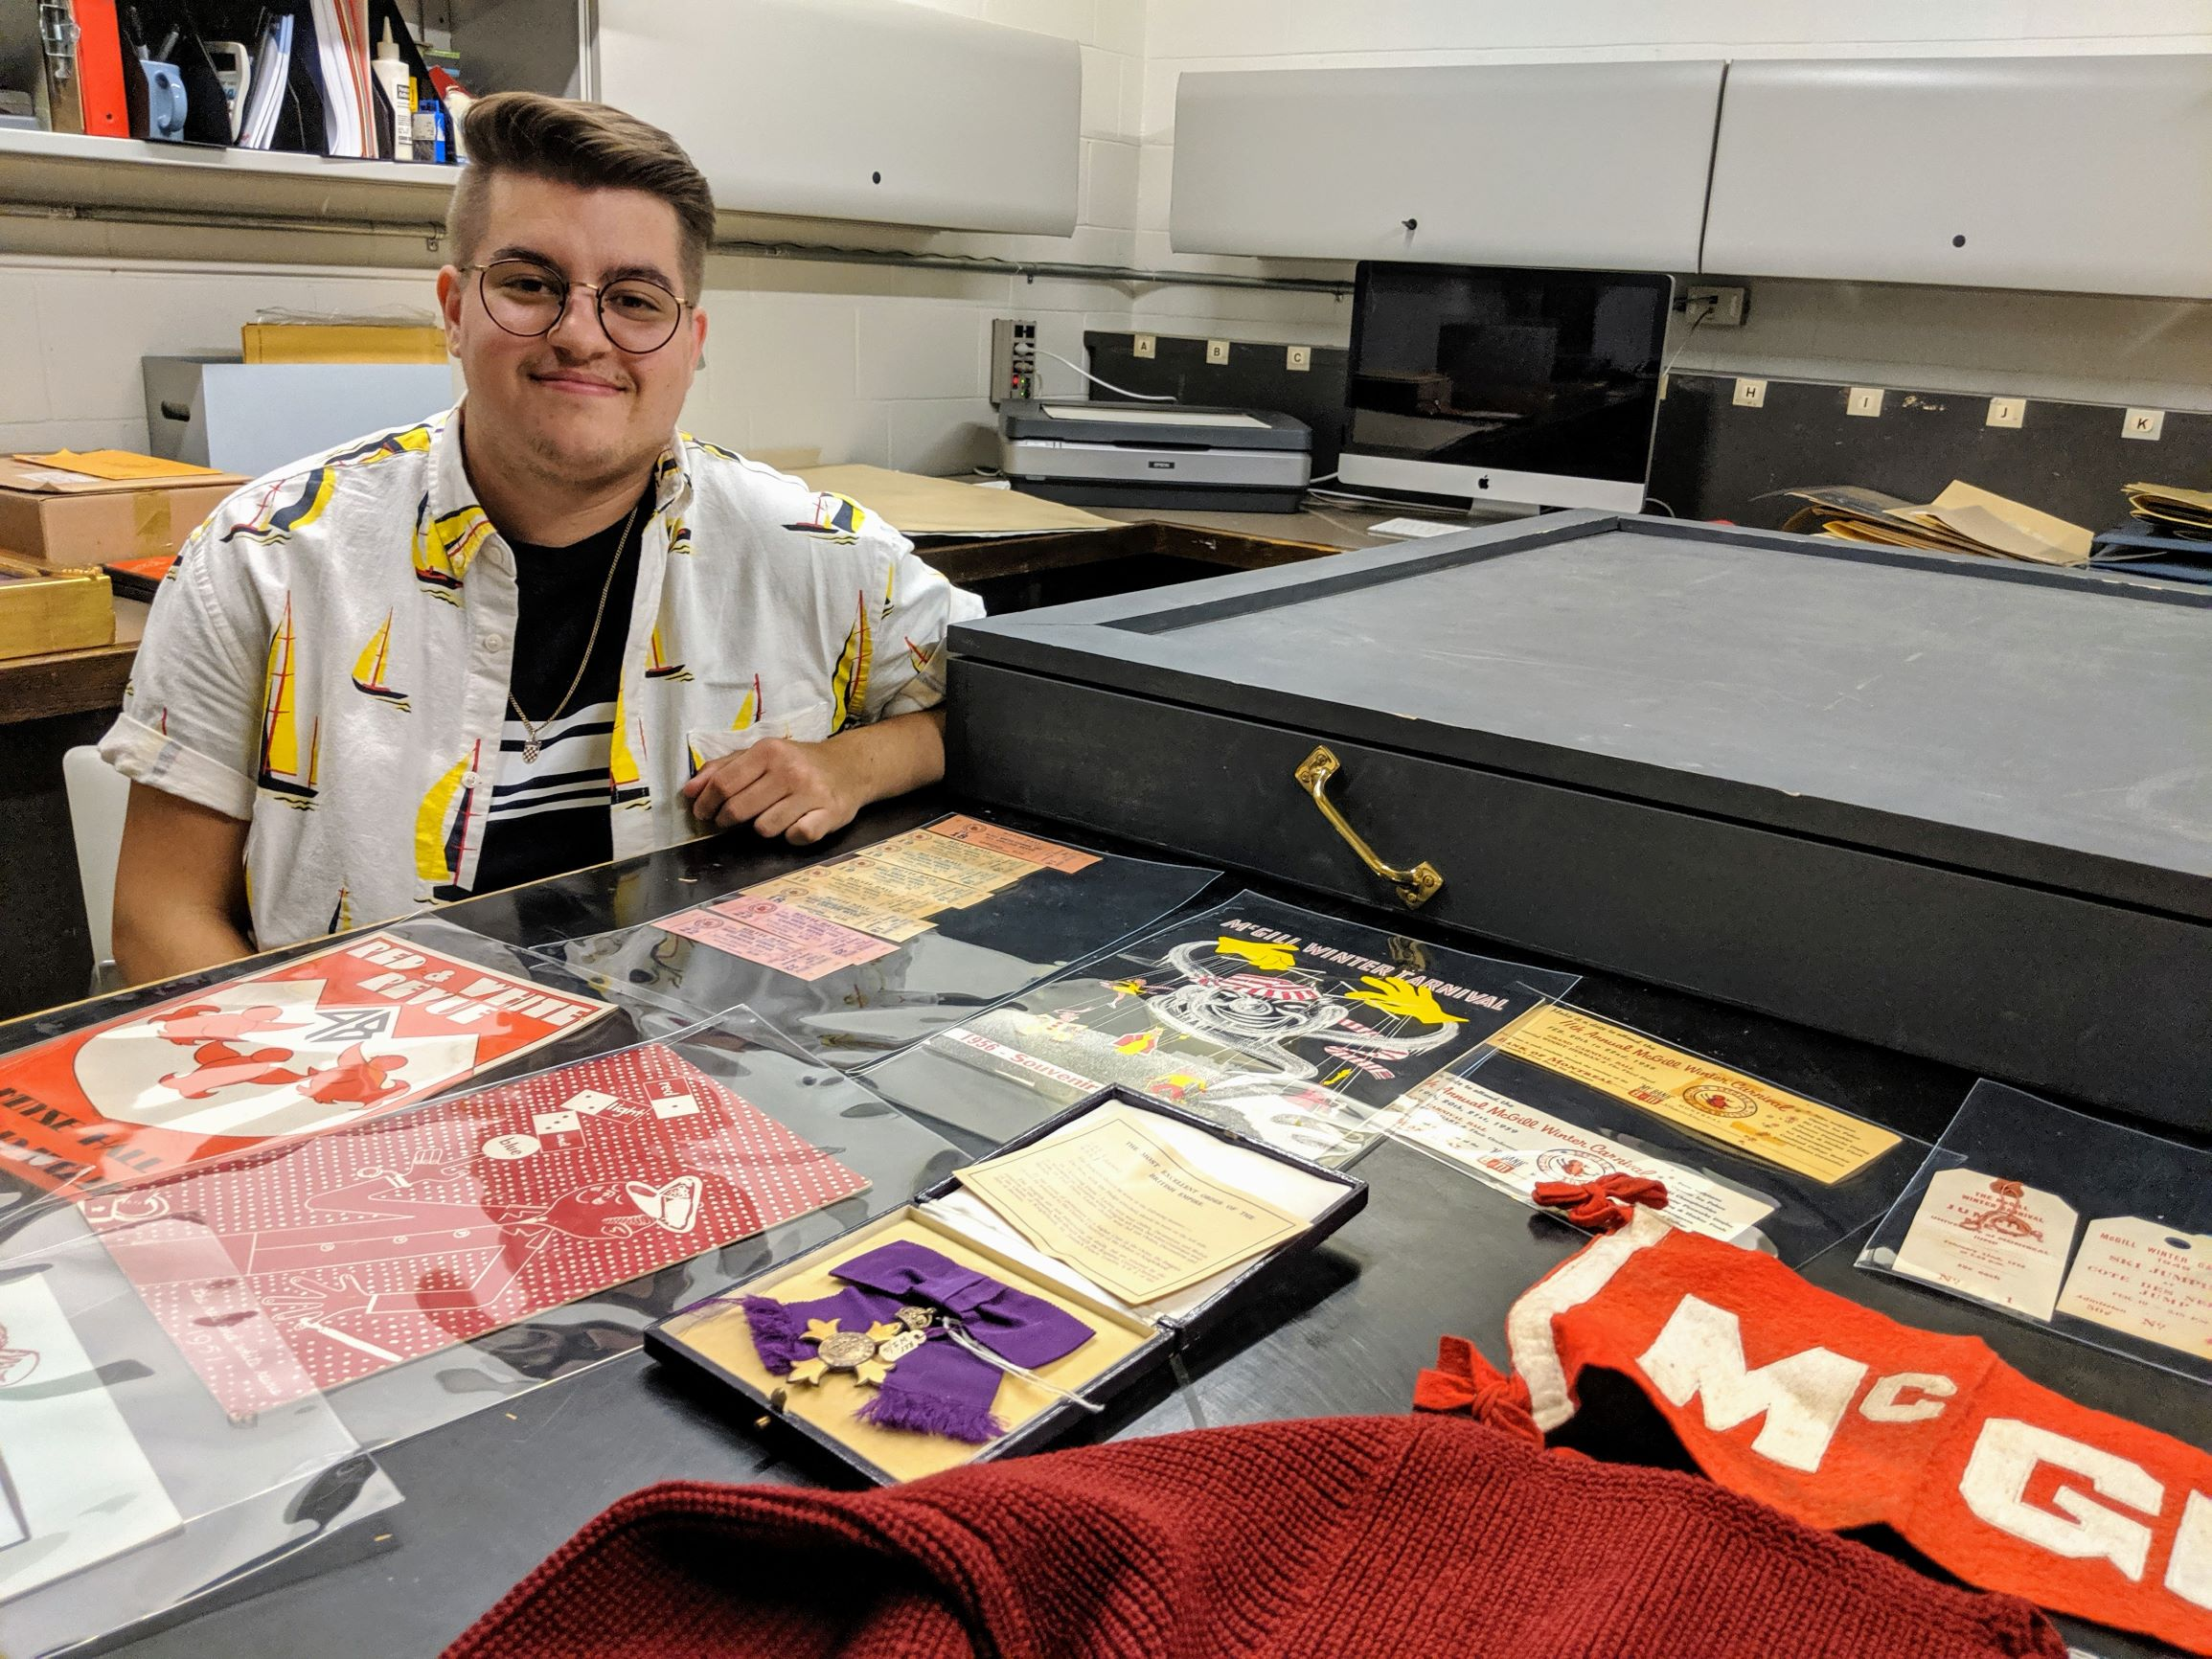 Nikolas Lamarre with items from McGill's archival materials.